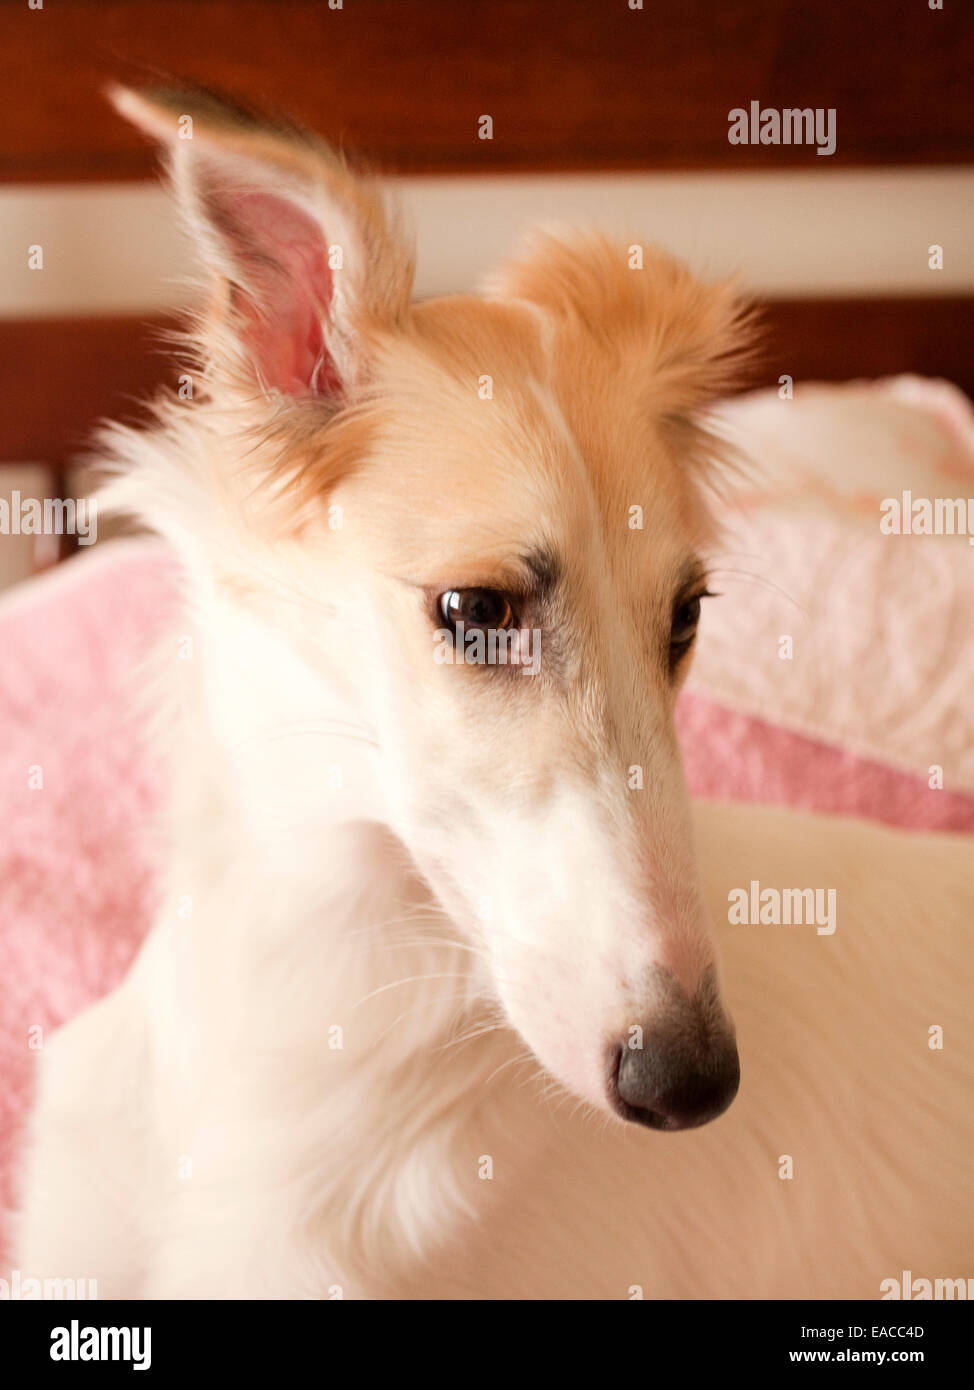 chien, chiot, puppy Photo Stock